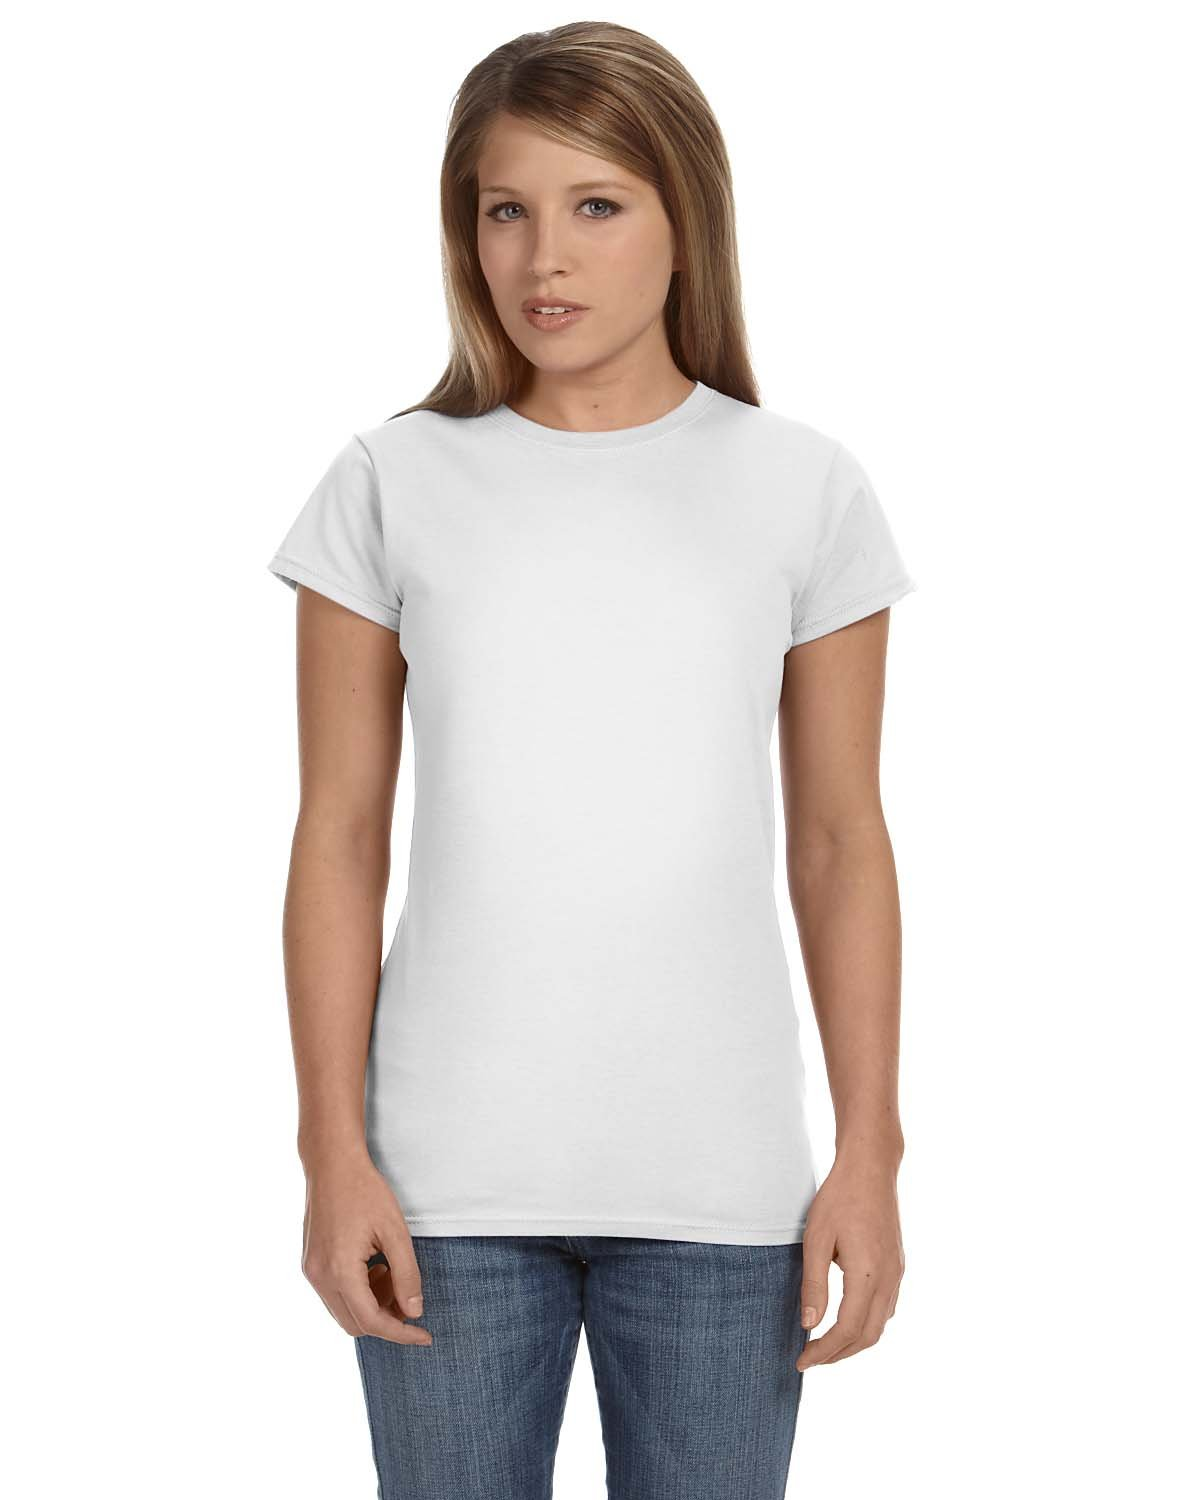 Gildan Ladies' Softstyle® 4.5 oz Fitted T-Shirt WHITE